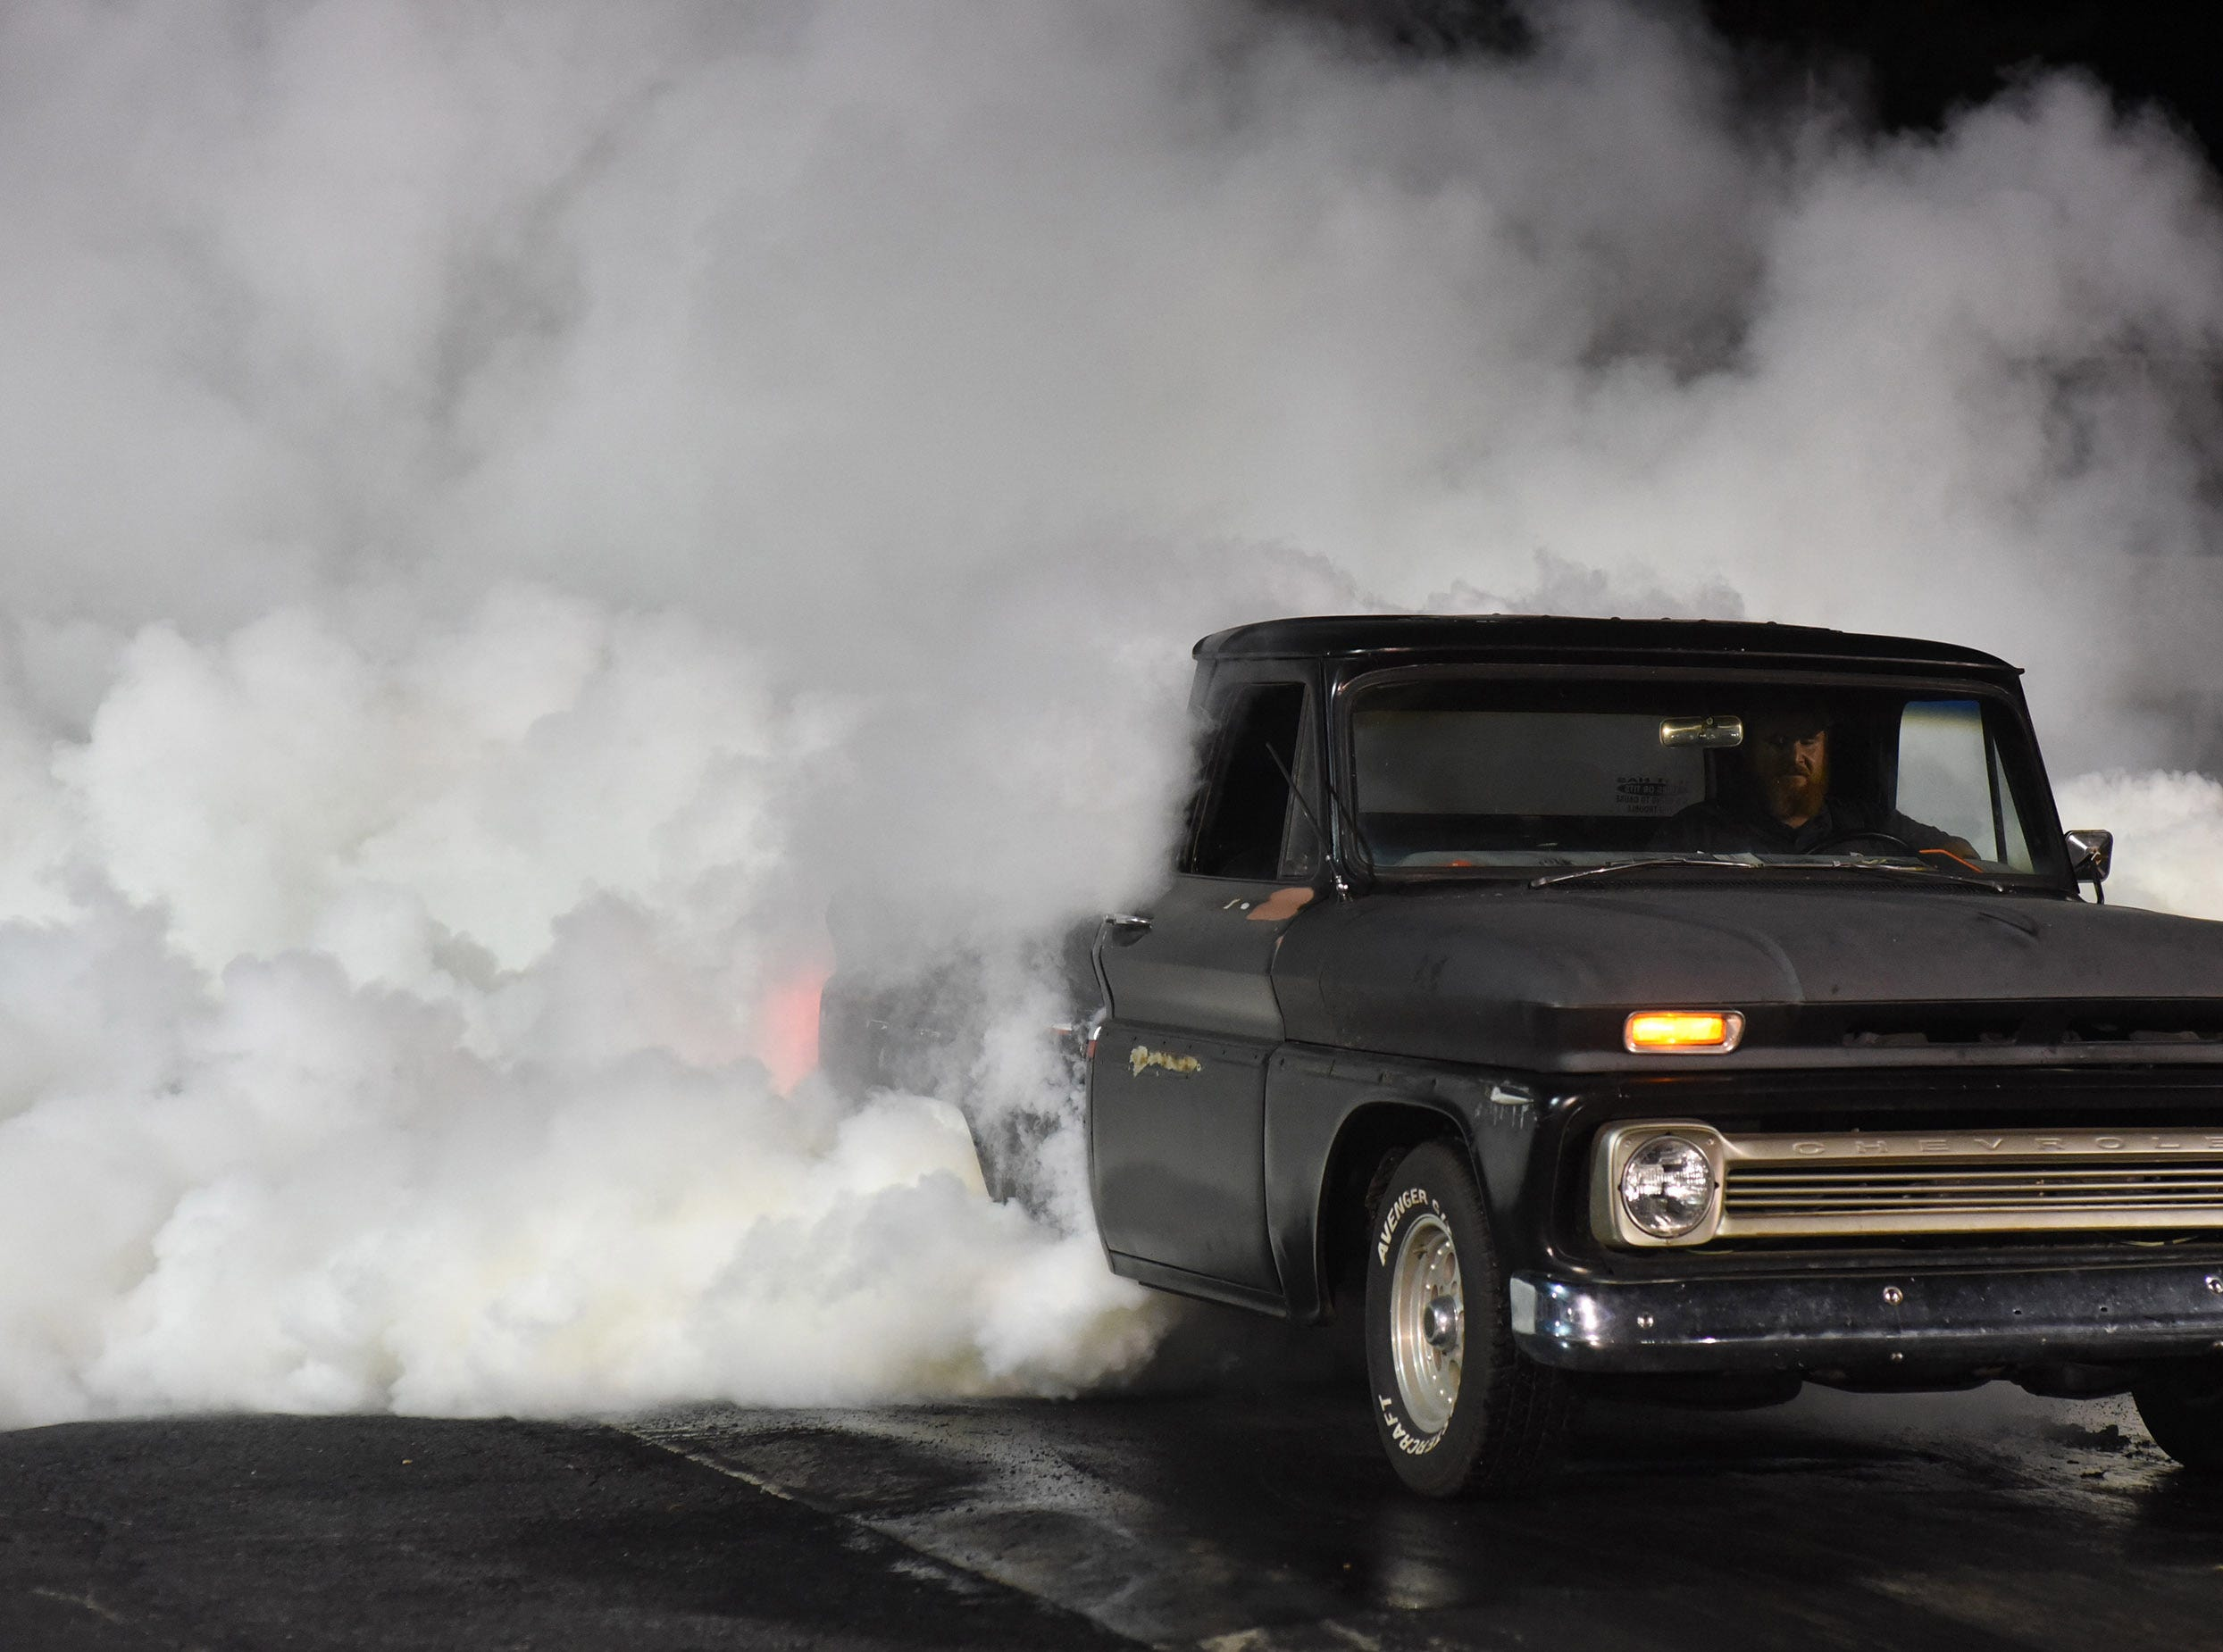 T.J. Hudson competes in the first Endless Summer Cruisin' 2018 Burnout Contest at the U.S. 13 Dragway in Delmar. Billy McLamb of Mardela Springs was the winner of the contest and $500 sponsored by Special Event Productions Inc. (Photo by Todd Dudek for The Daily Times)